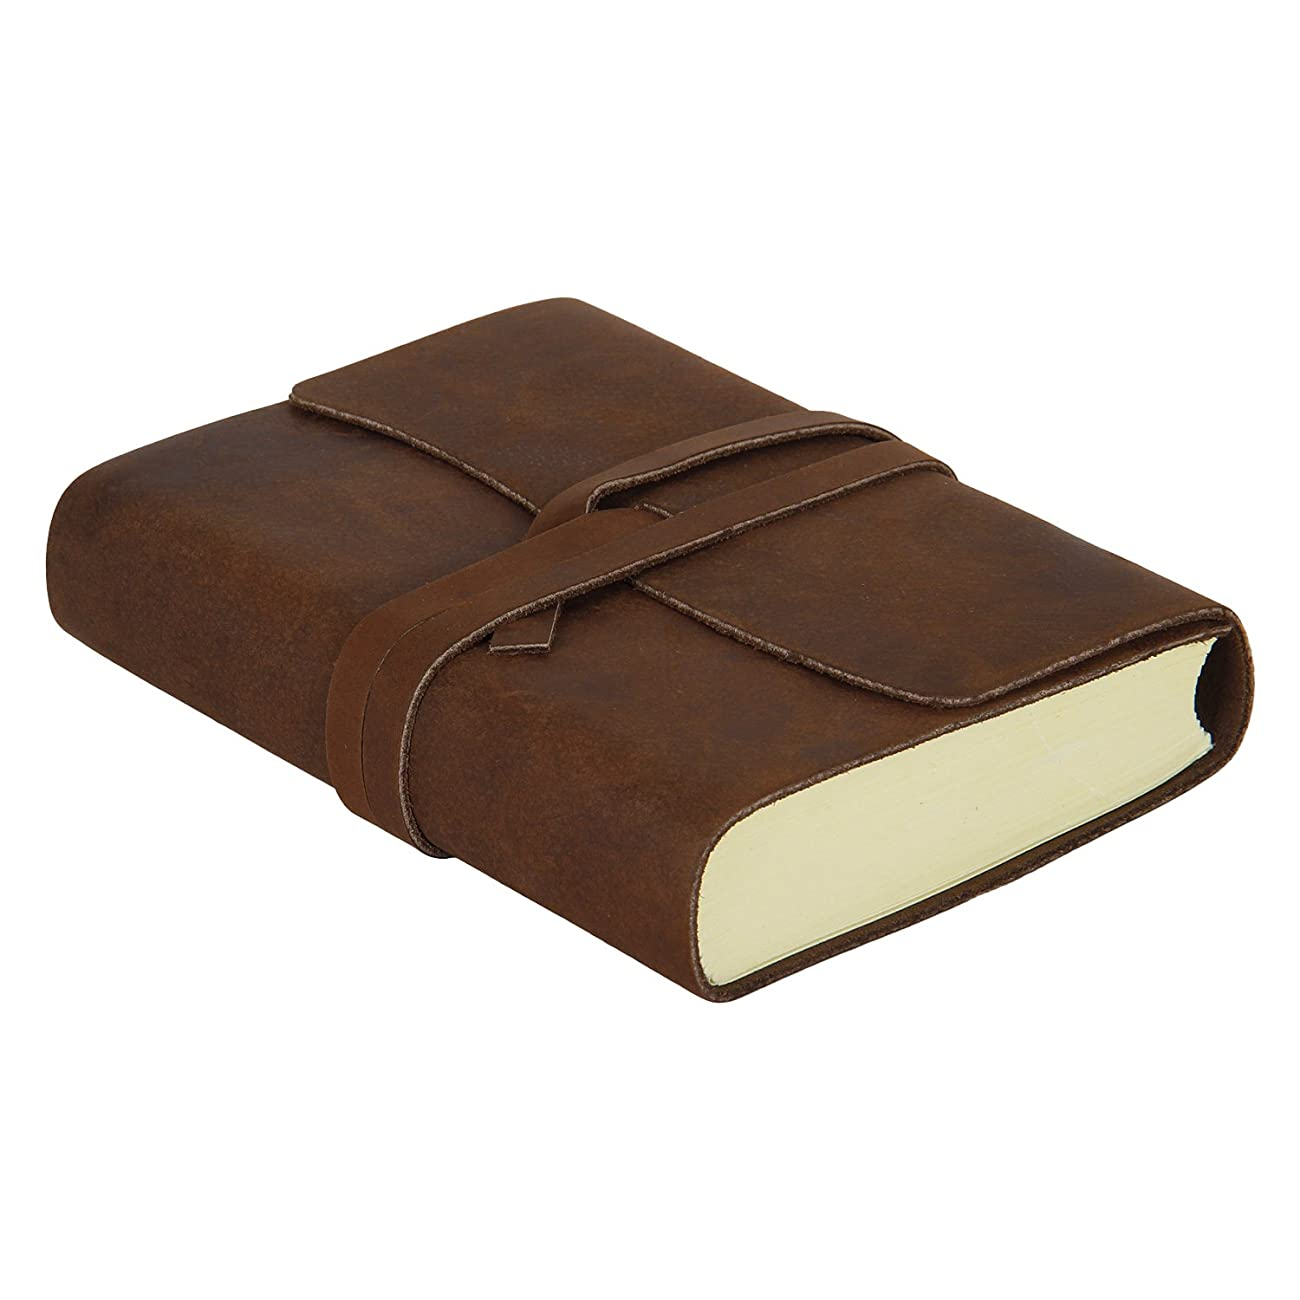 Handmade Medium Vintage Leather Journal Diary 3